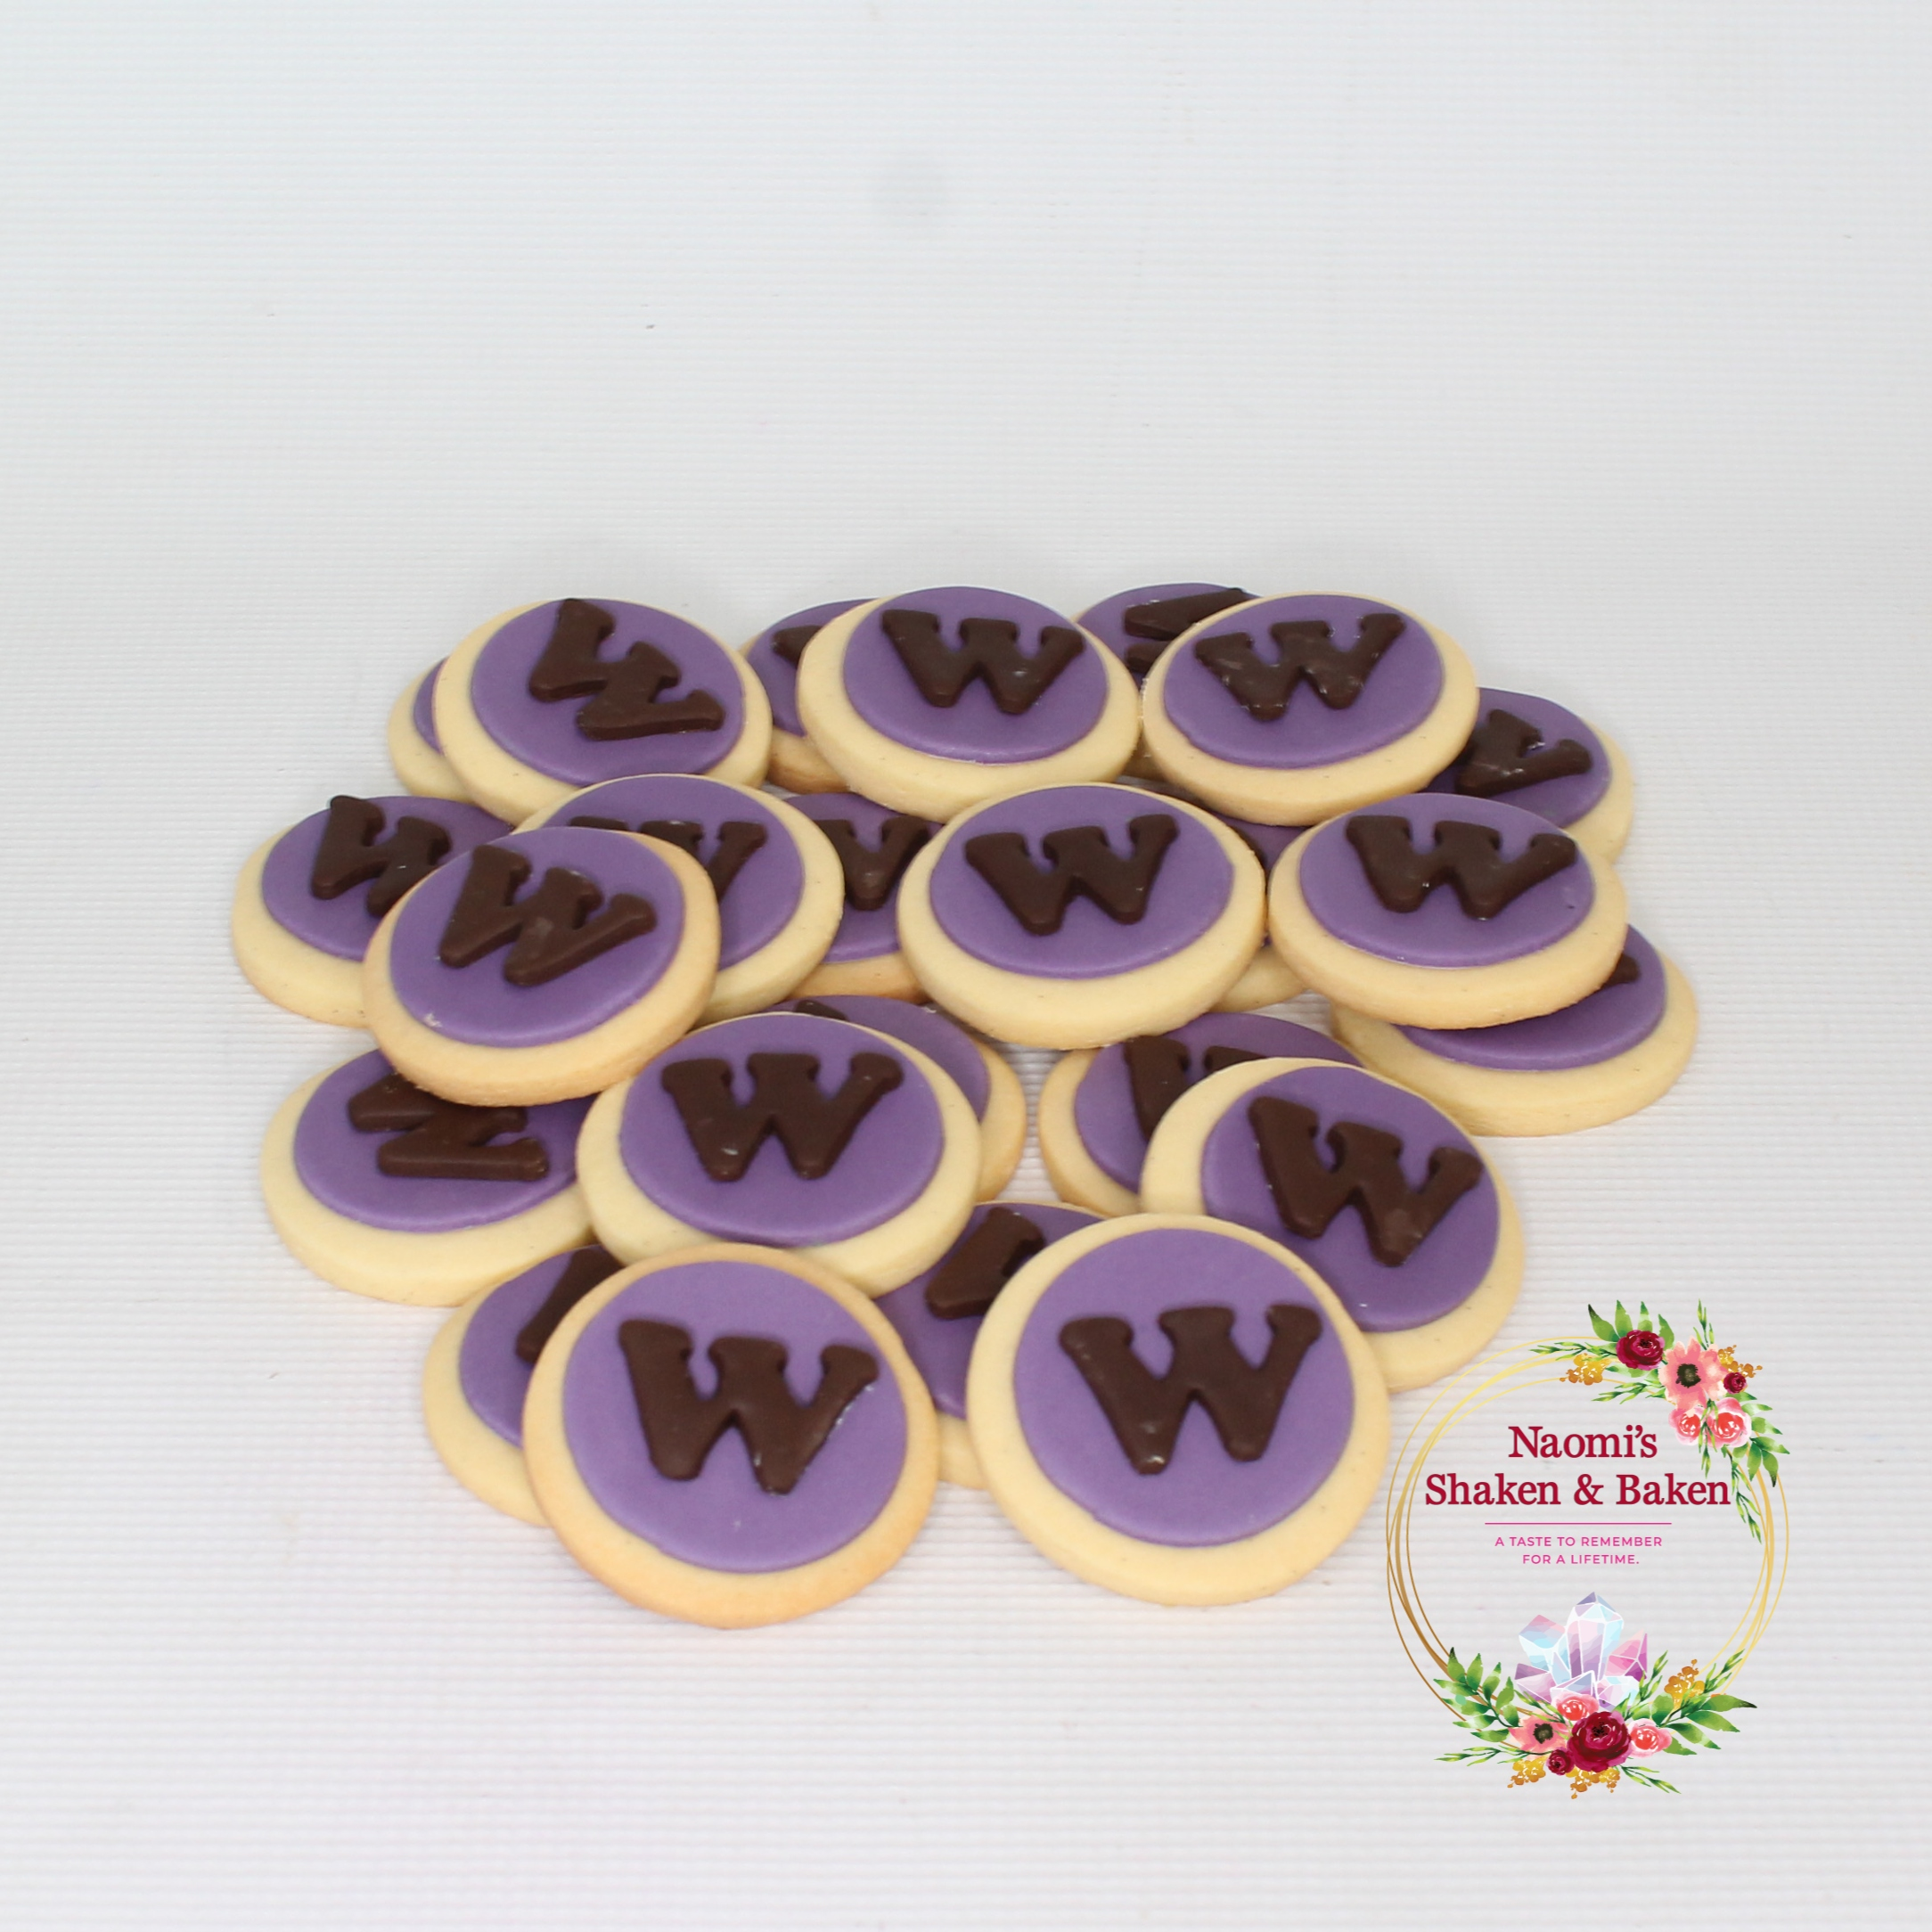 Willy Wonka Themed Cookies